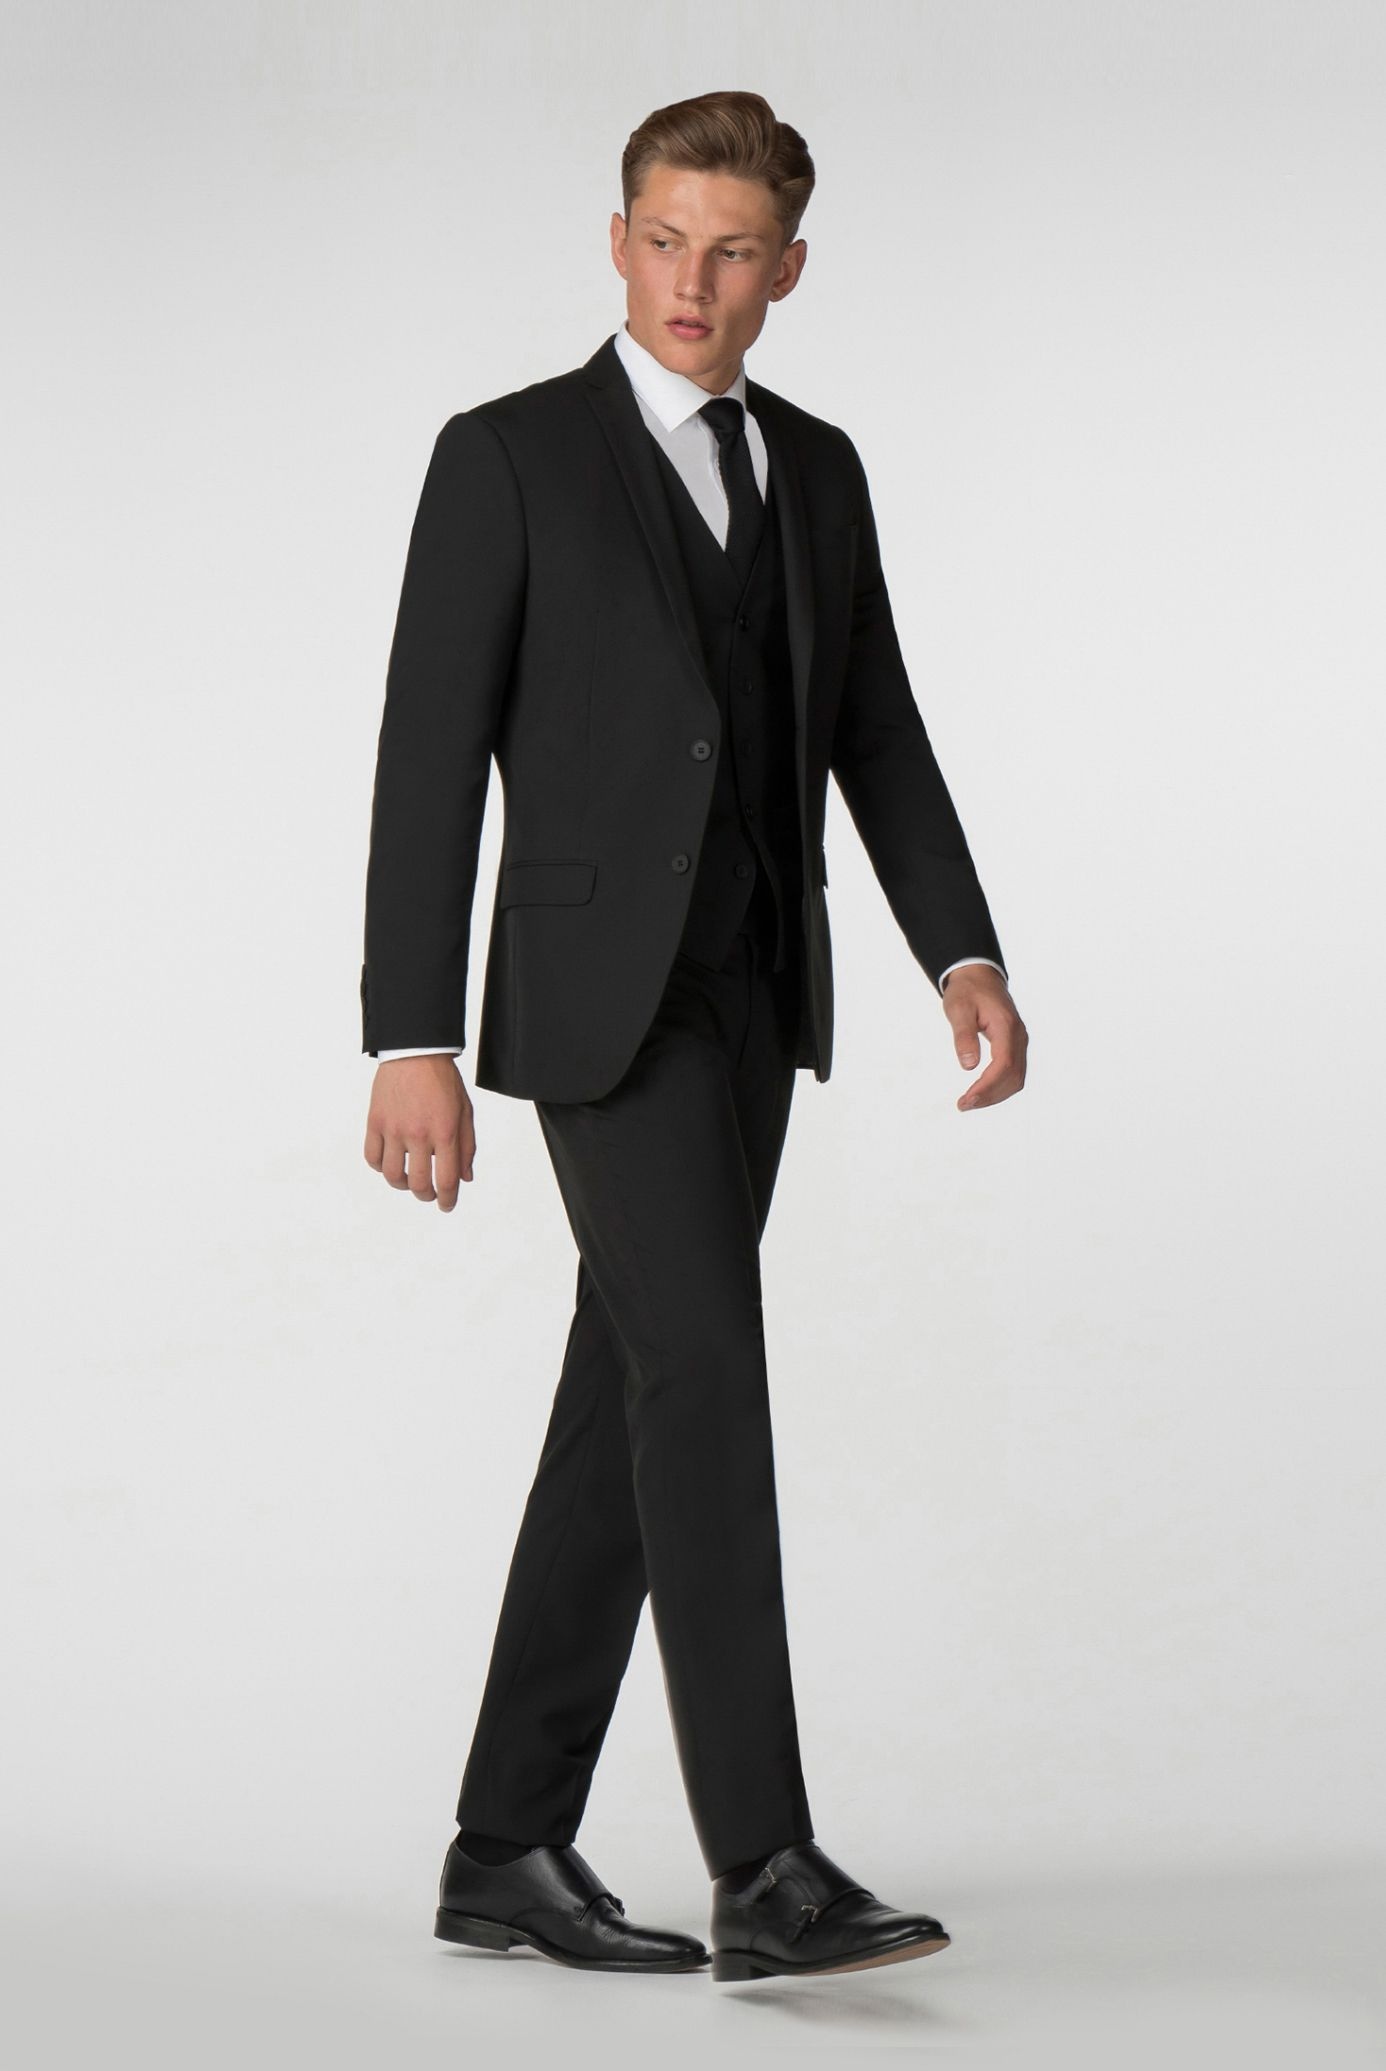 Black Suit Mens Business Casual Shoes Guide And 20 Tips For